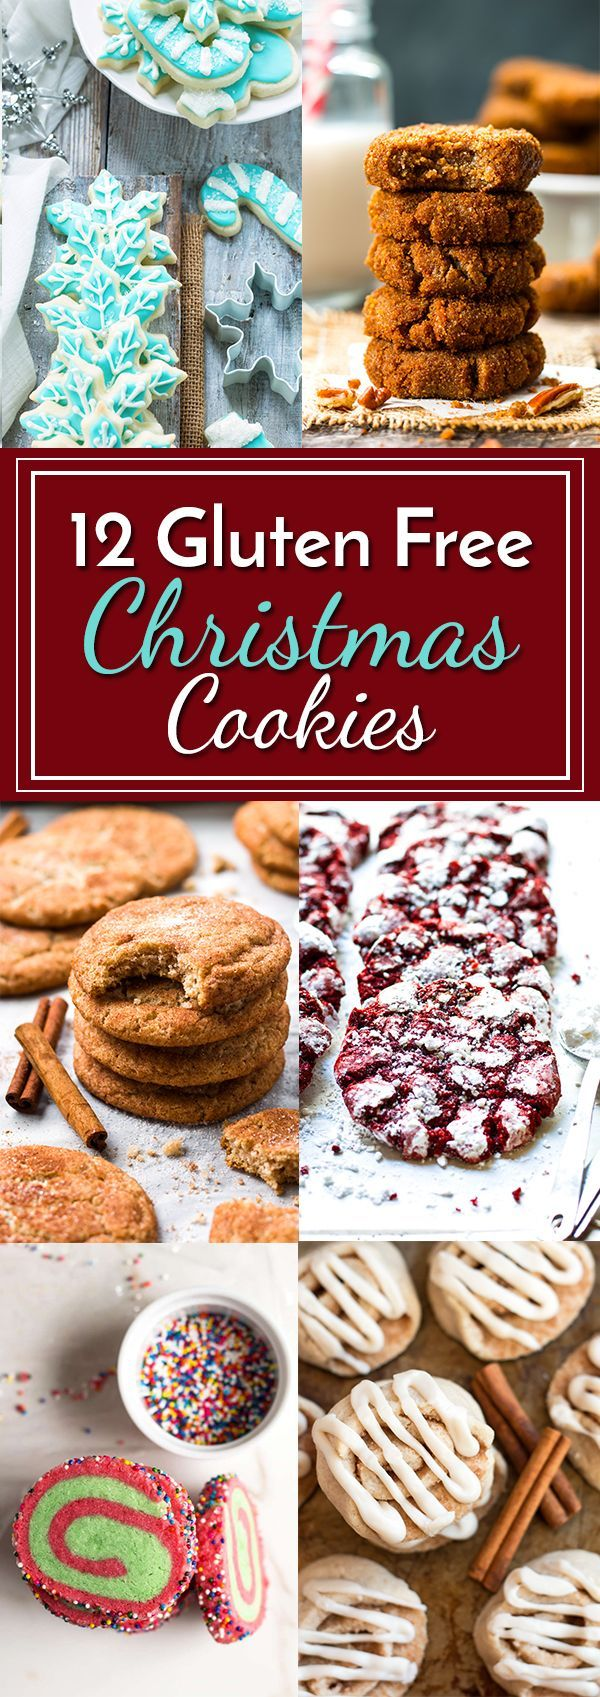 12 Gluten Free Christmas Cookies Easy Gluten Free Meal Recipes